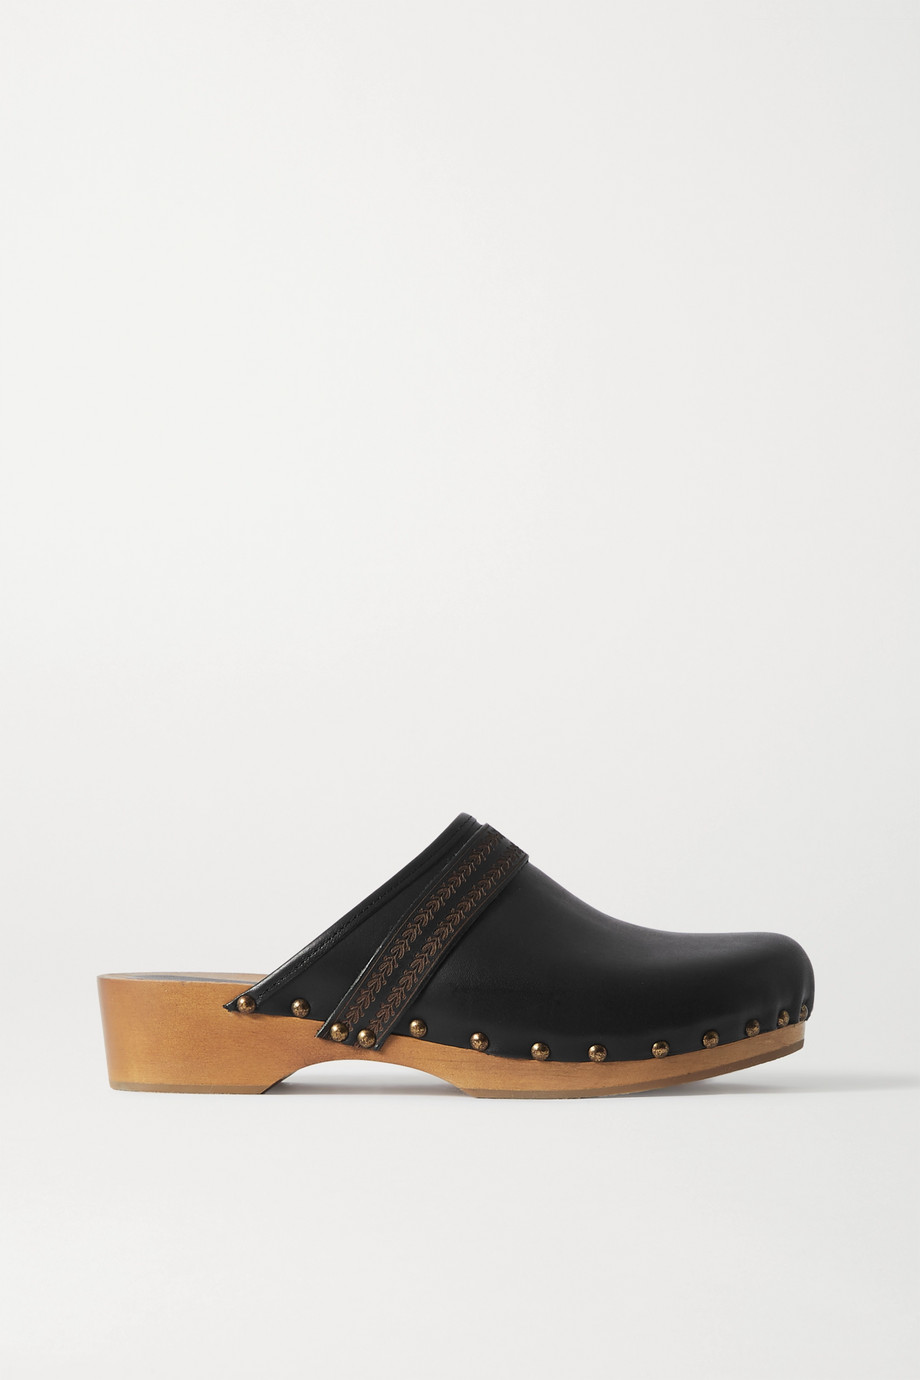 Isabel Marant Thalie studded leather clogs